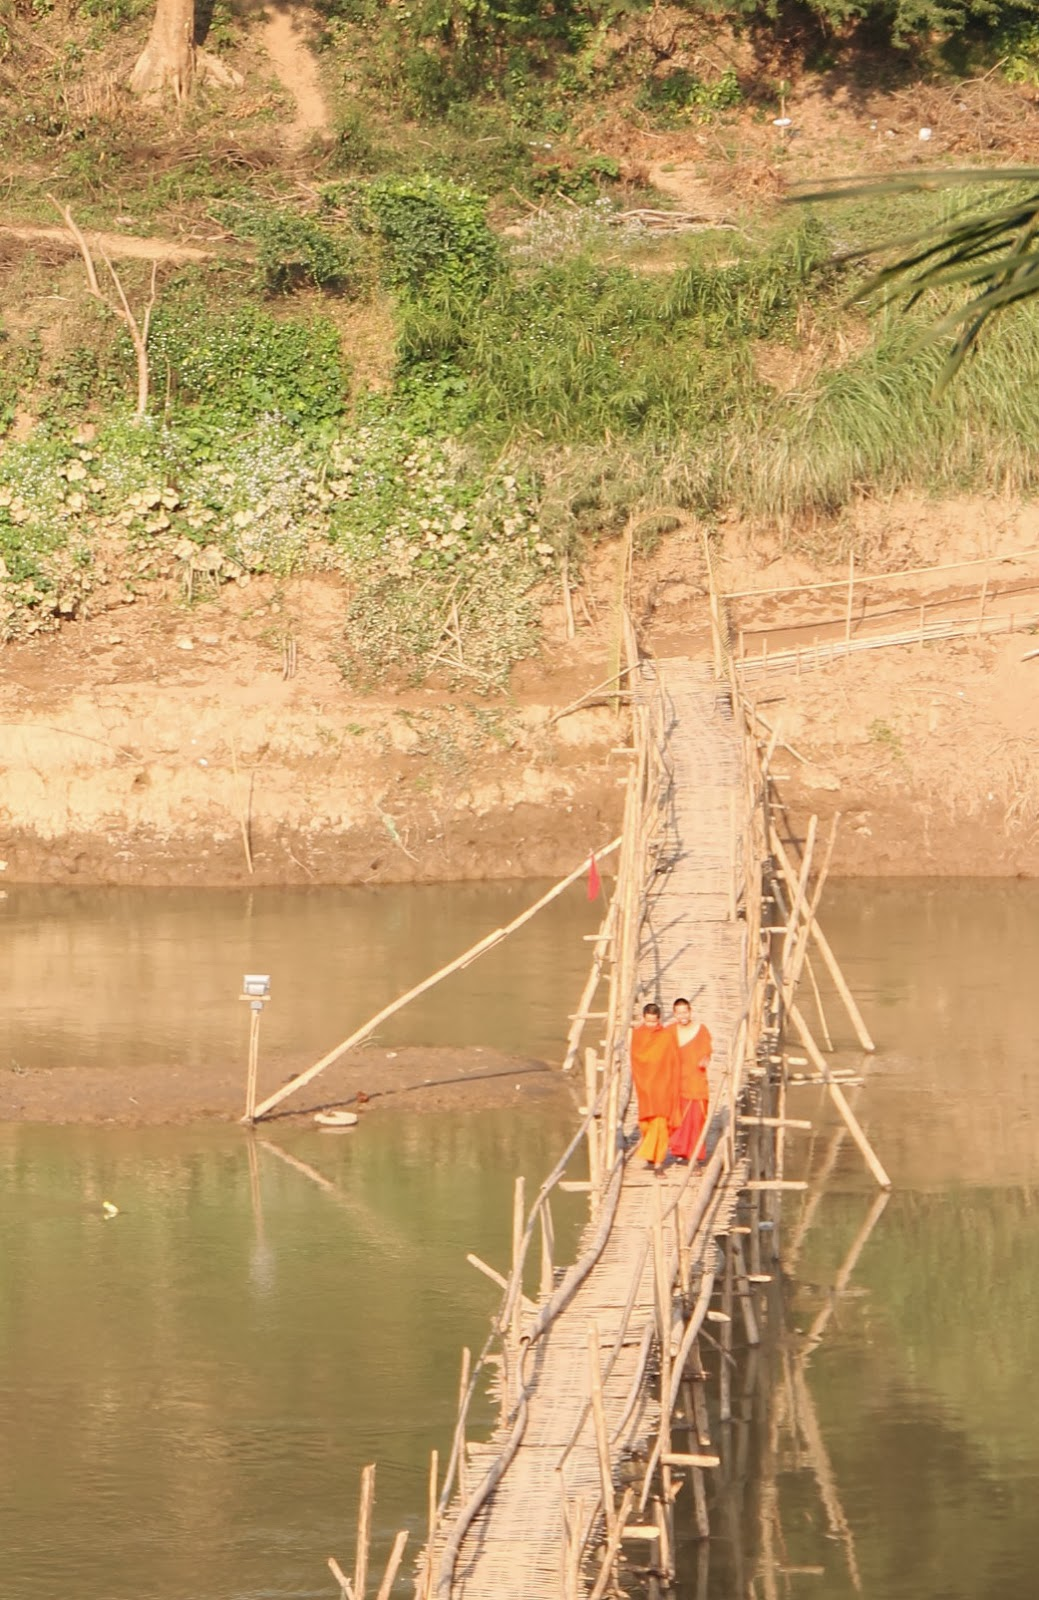 Monks crossing the Kahn River on a rickity bamboo bridge.